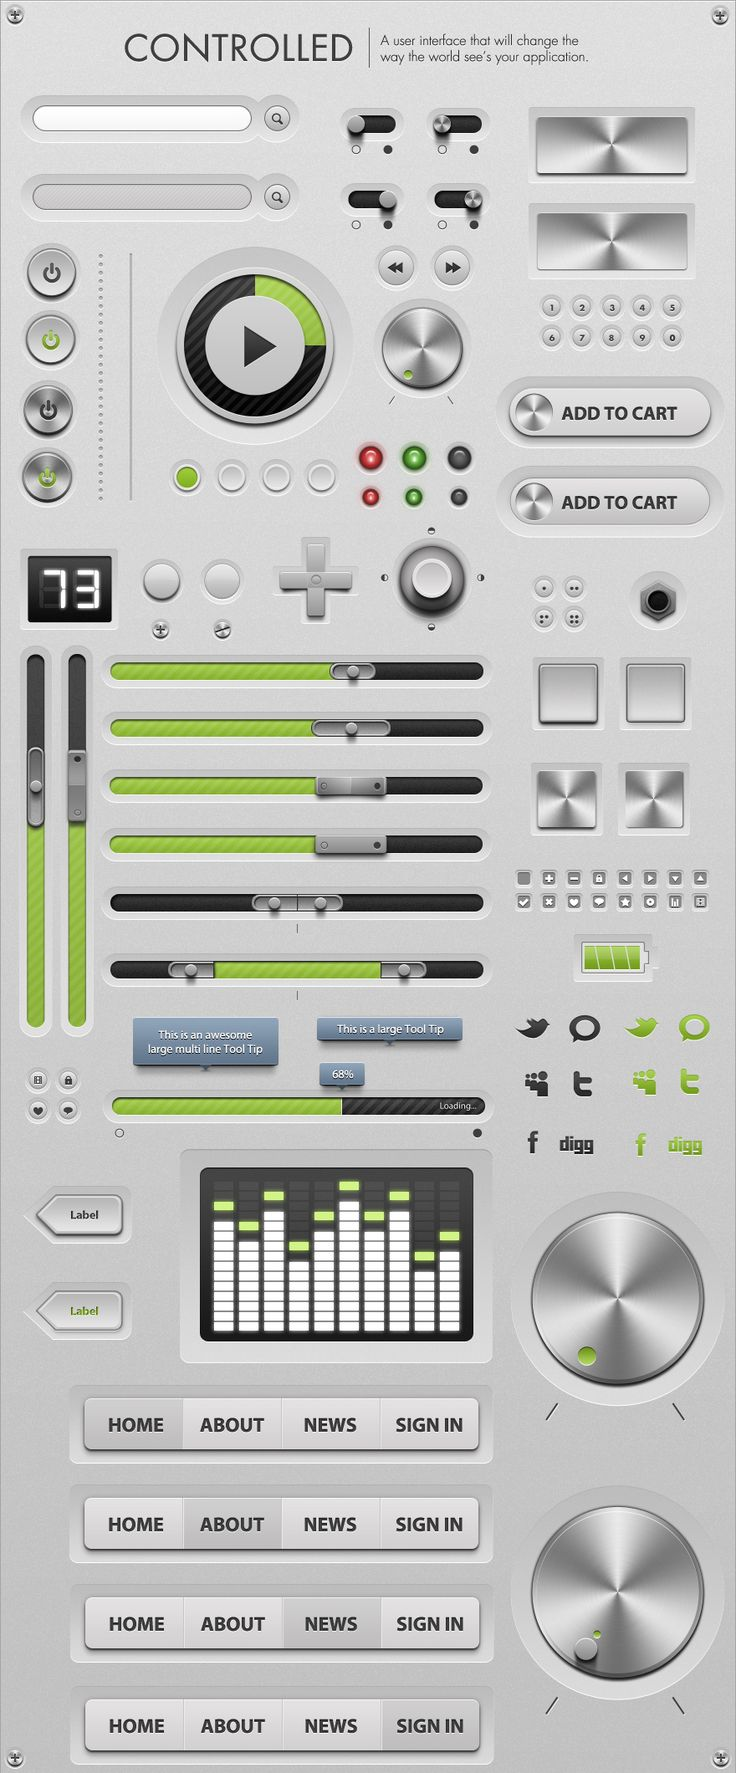 #interface #hyperreal #console #UI